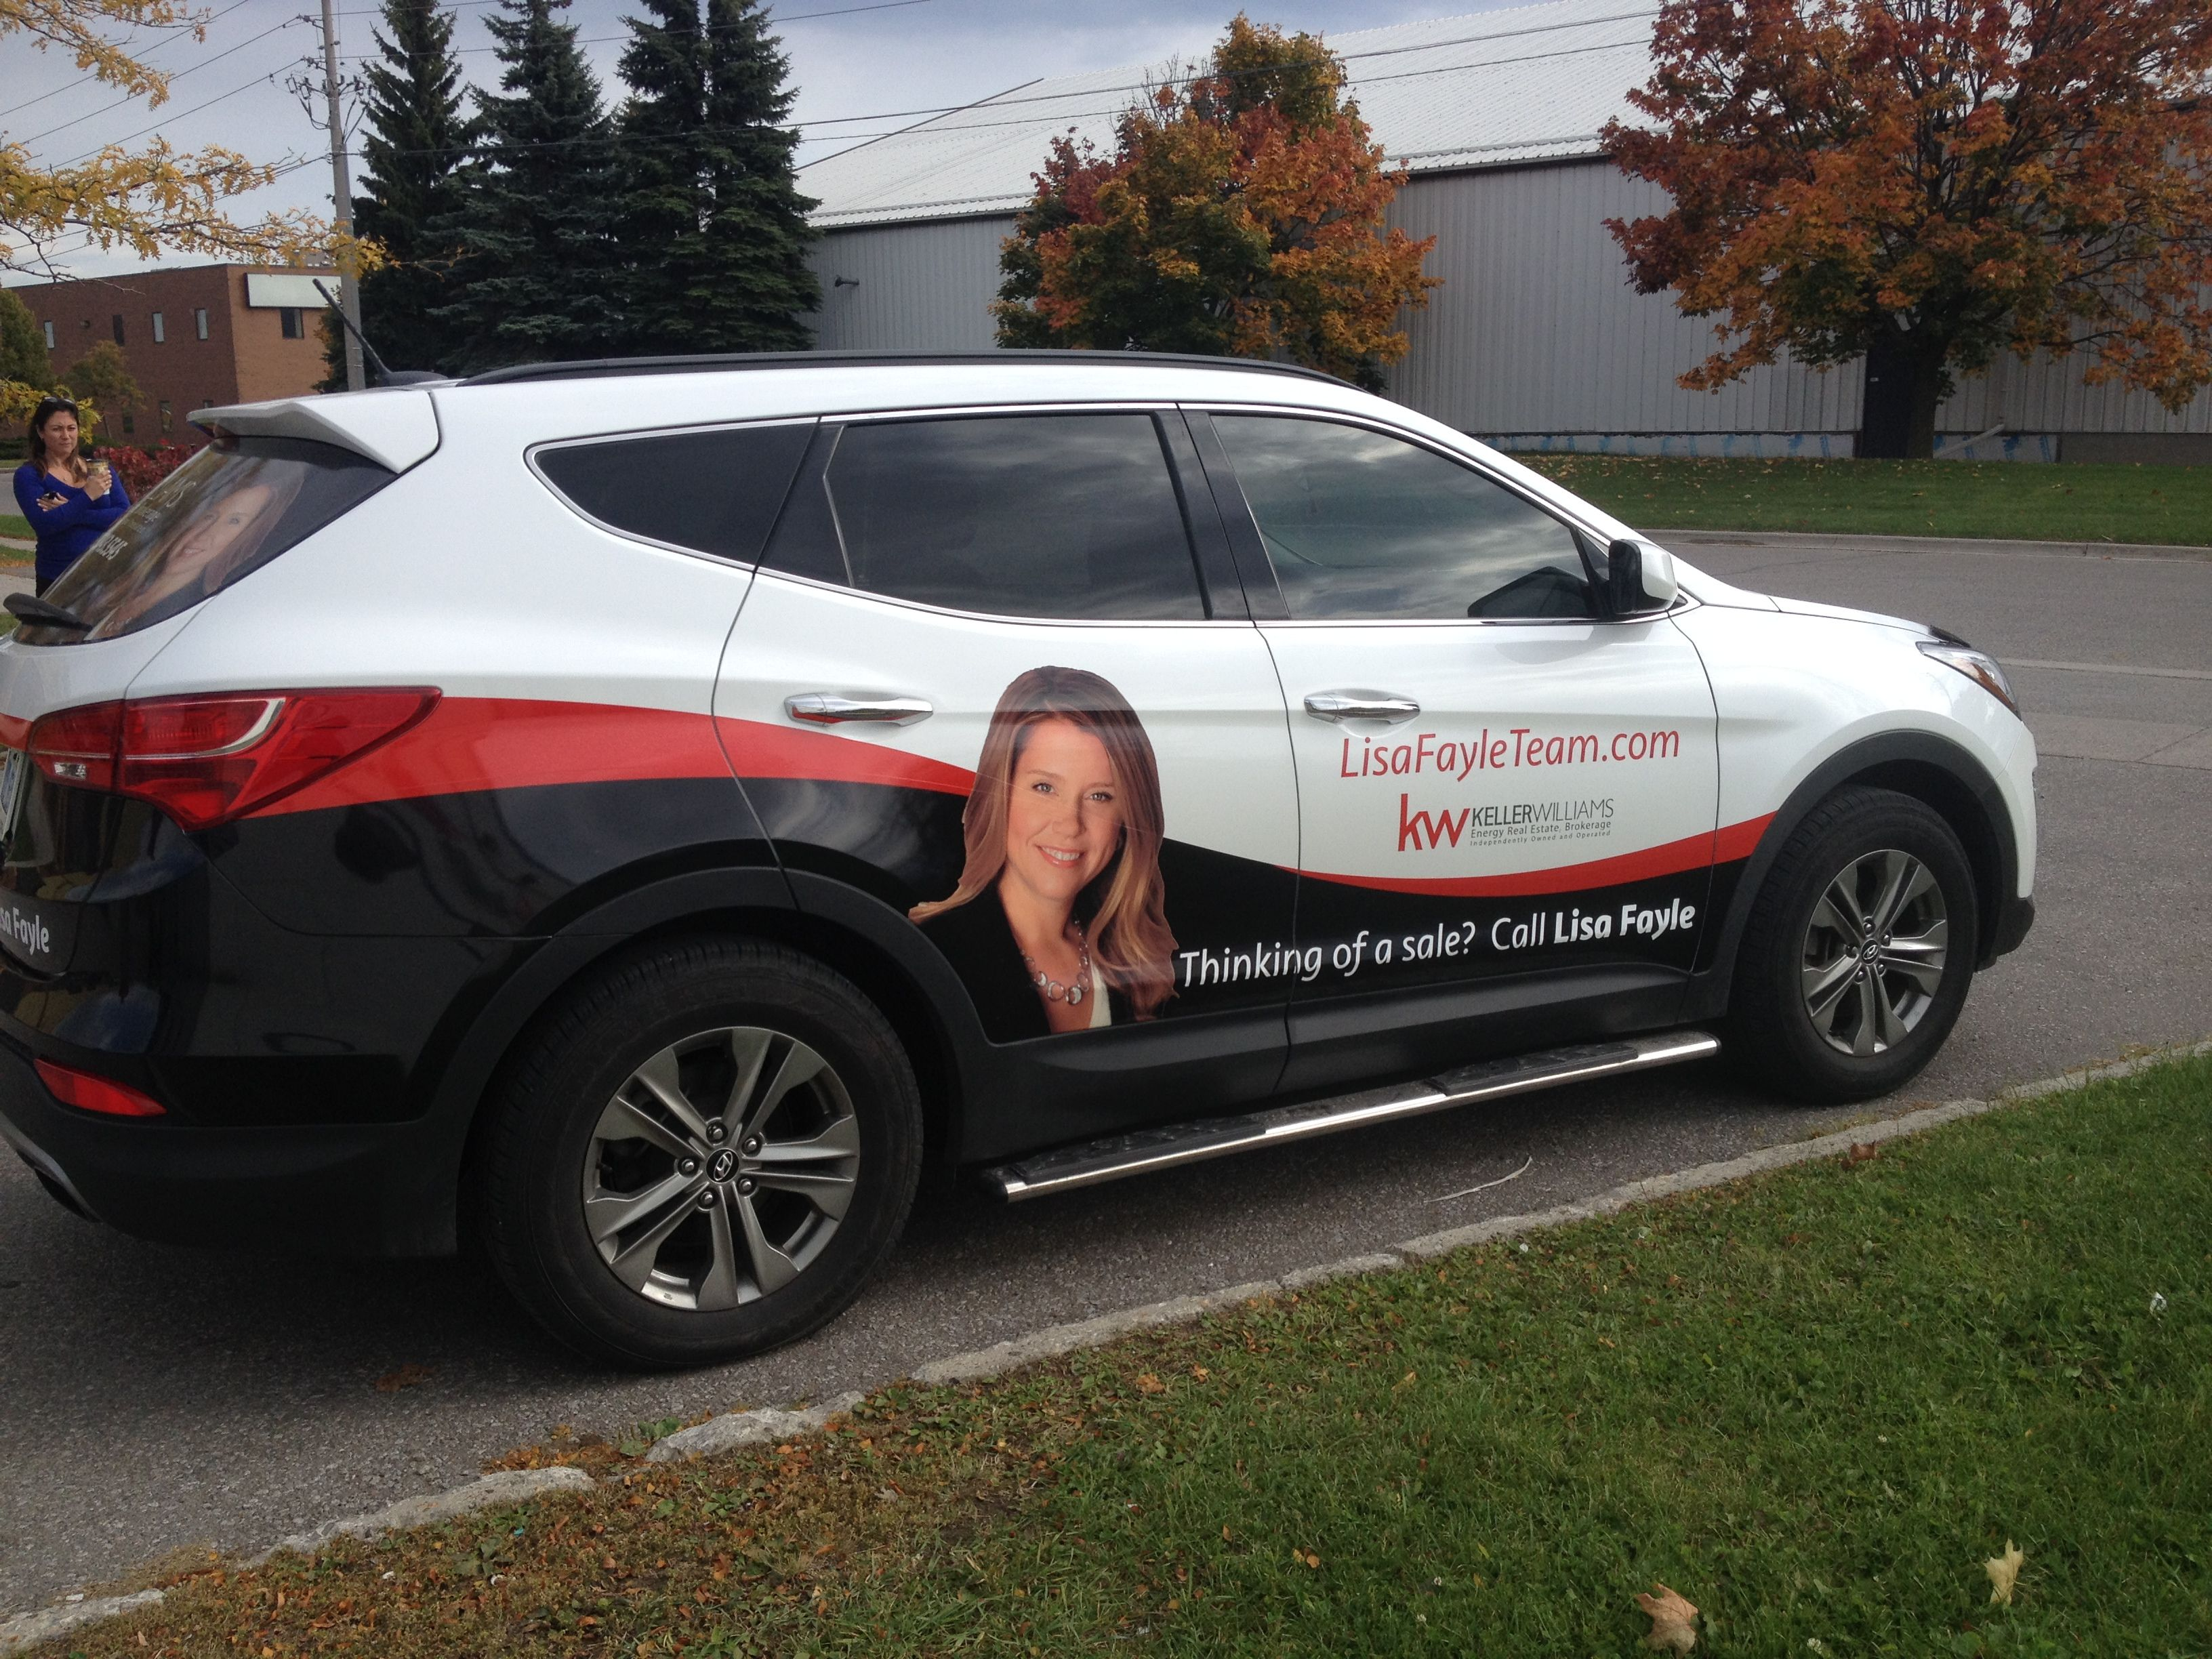 Partial Wrap And Digital Print Perforated Vinyl Rear Window Graphics Completed For The Lisa Fayle Team Lovin The Colou Car Wrap Window Graphics Car Graphics [ 2448 x 3264 Pixel ]